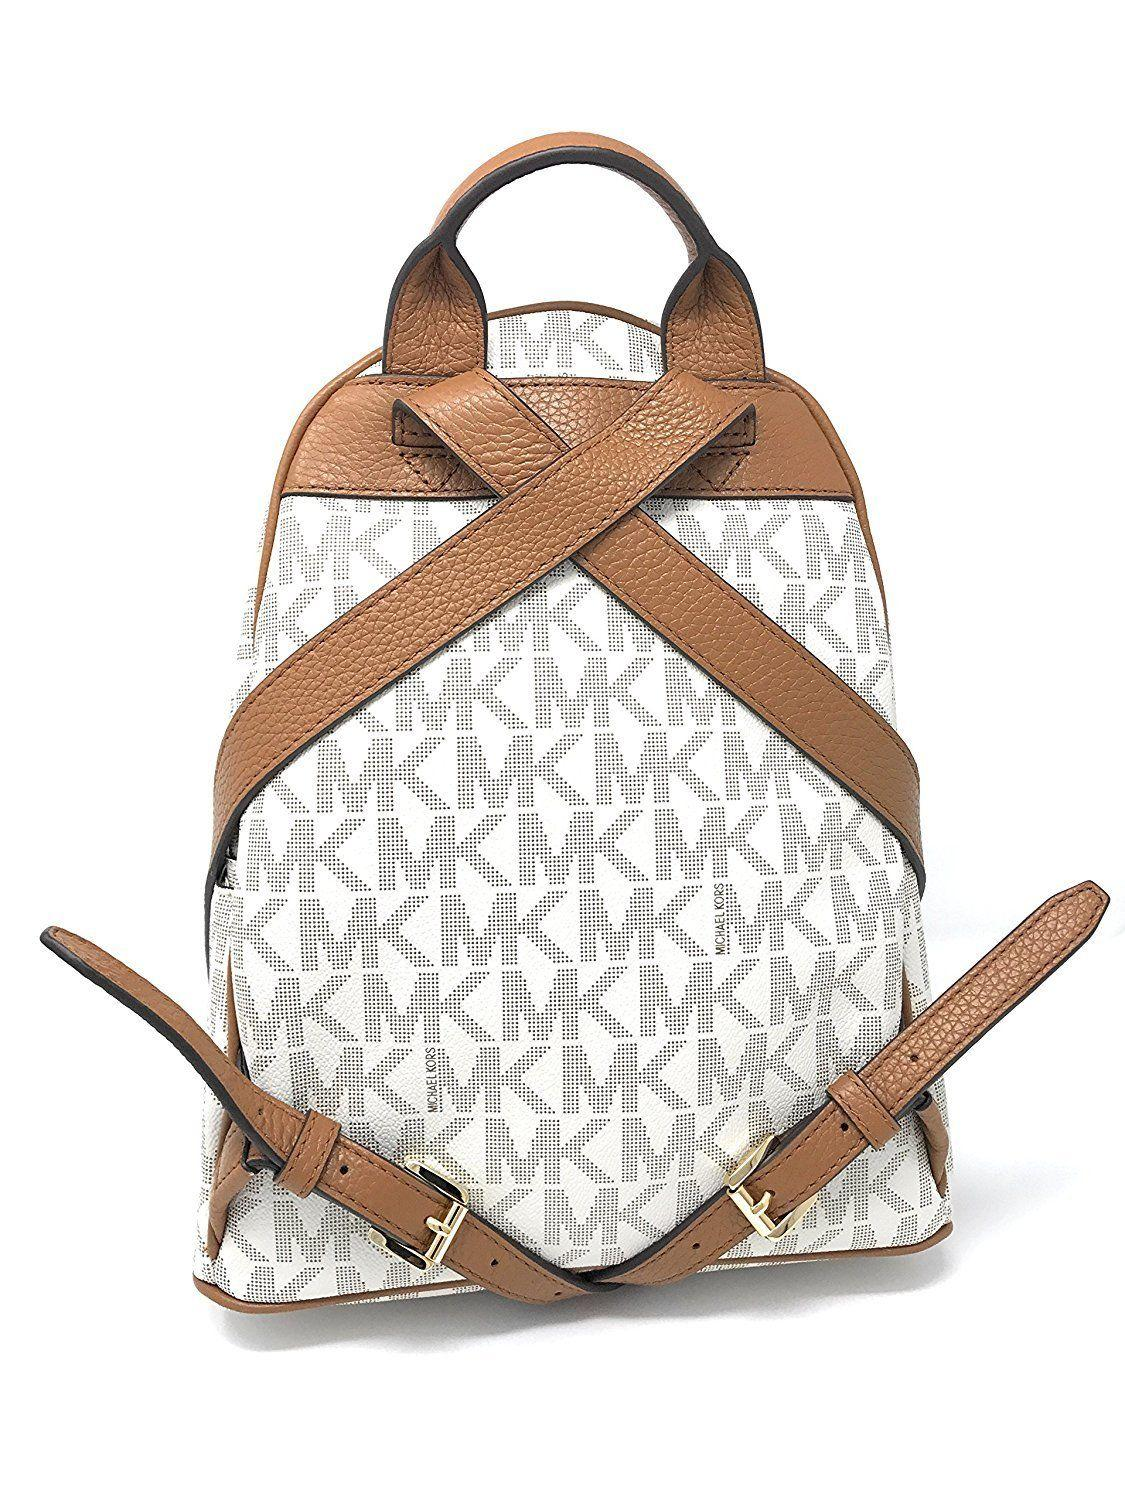 ad92326a1b0a france michael kors abbey medium frame out stud signature vanilla leather  backpack tradesy ea789 36fc1